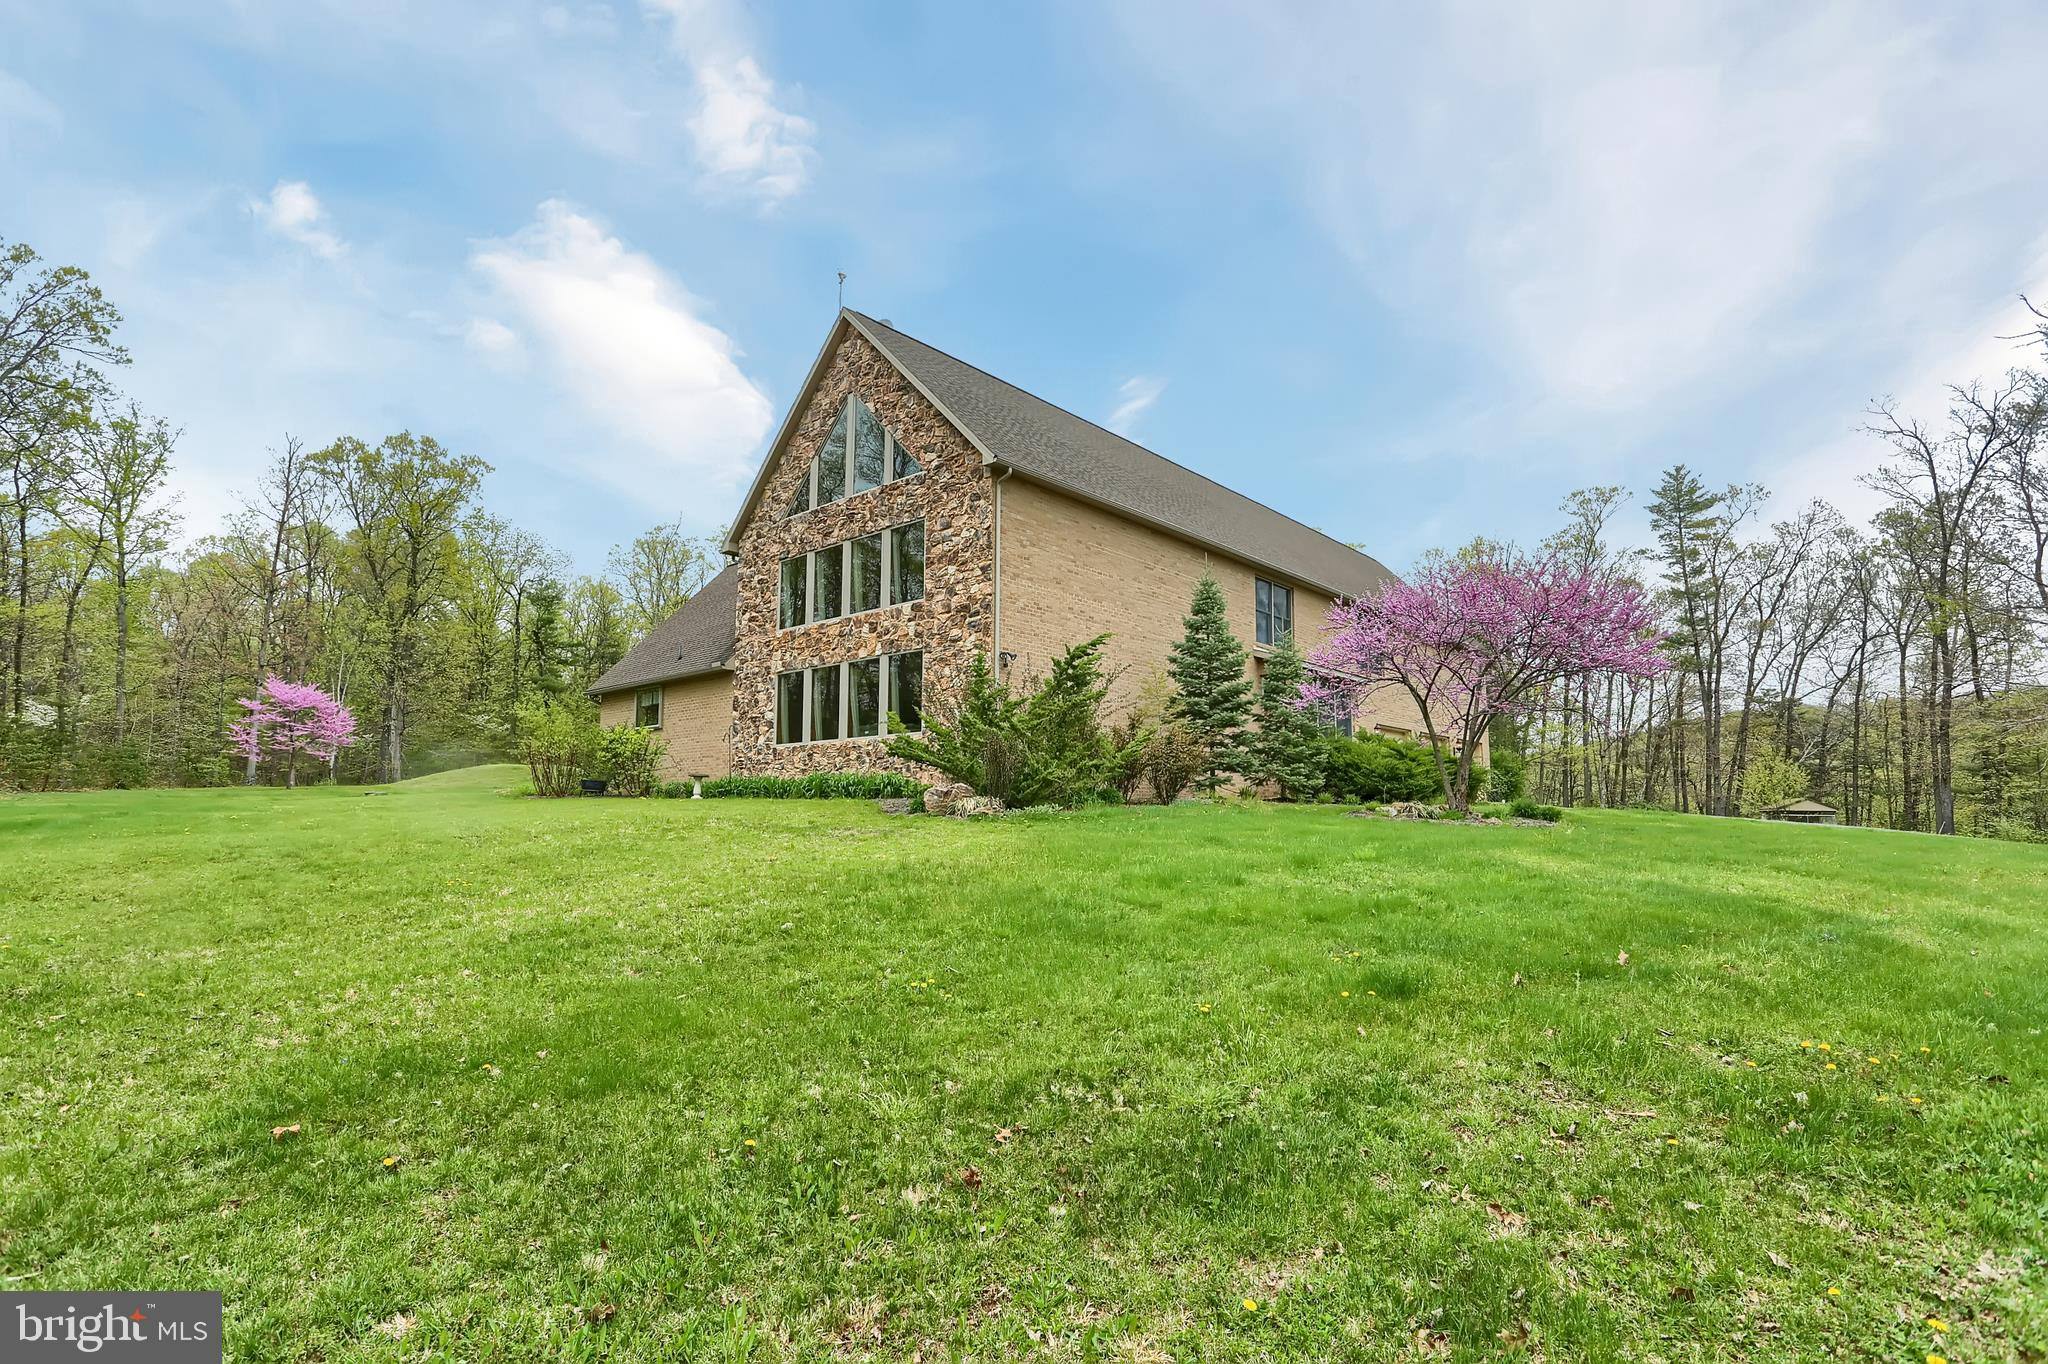 1912 HONEYSUCKLE HOLLOW ROAD, ELLIOTTSBURG, PA 17024